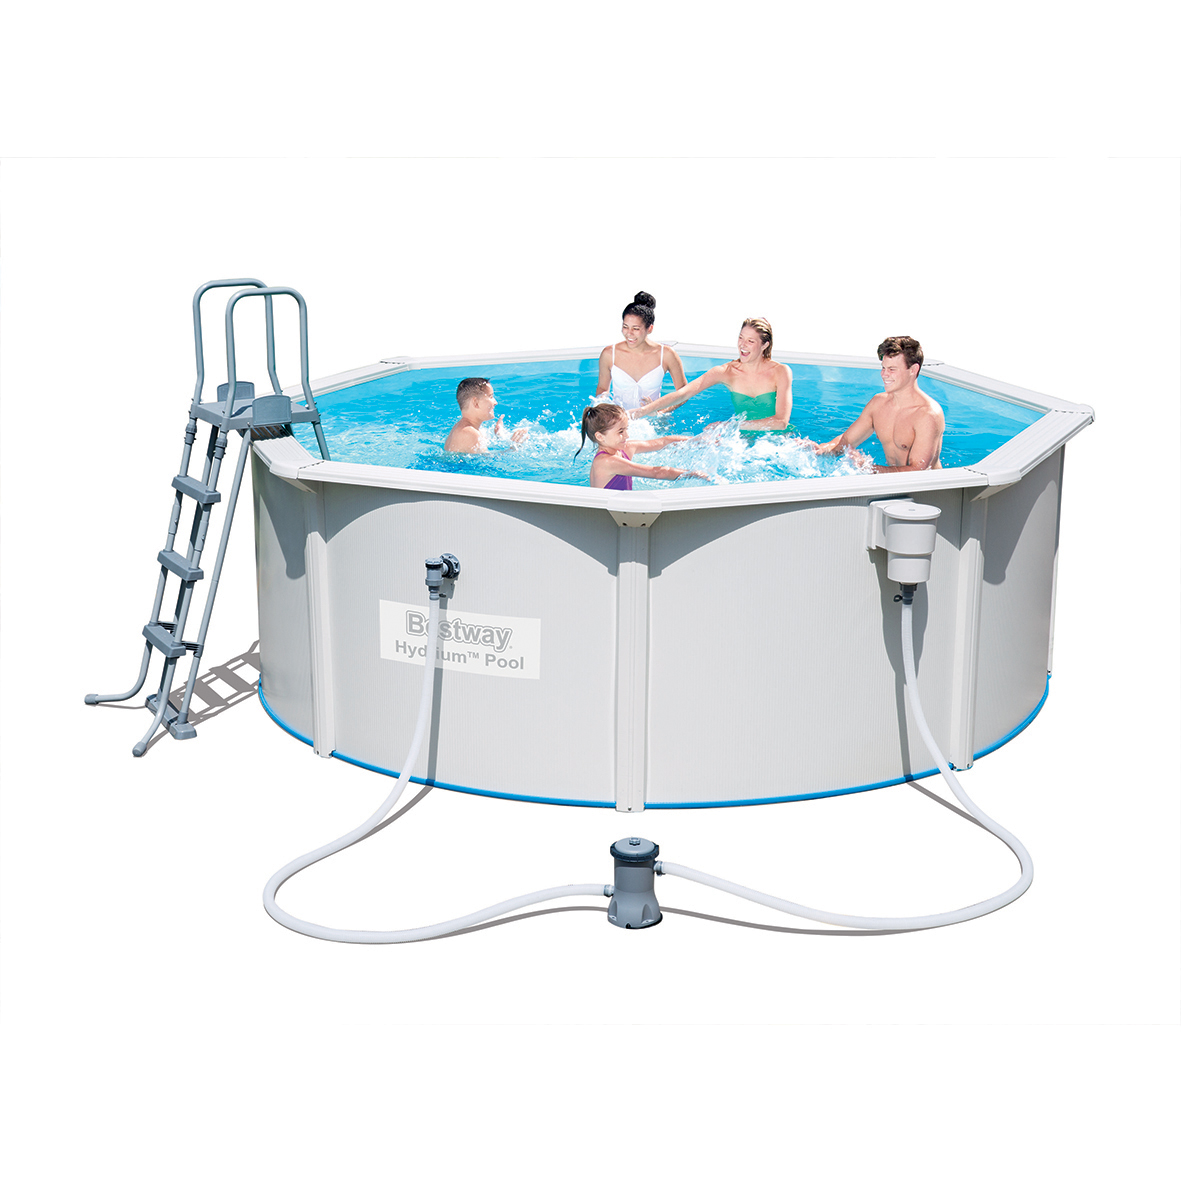 bestway-hydrium-poseidon-pool-set-36-x-12m--code-56571-free-courier-country-widesave-r2000-while-stocks-last